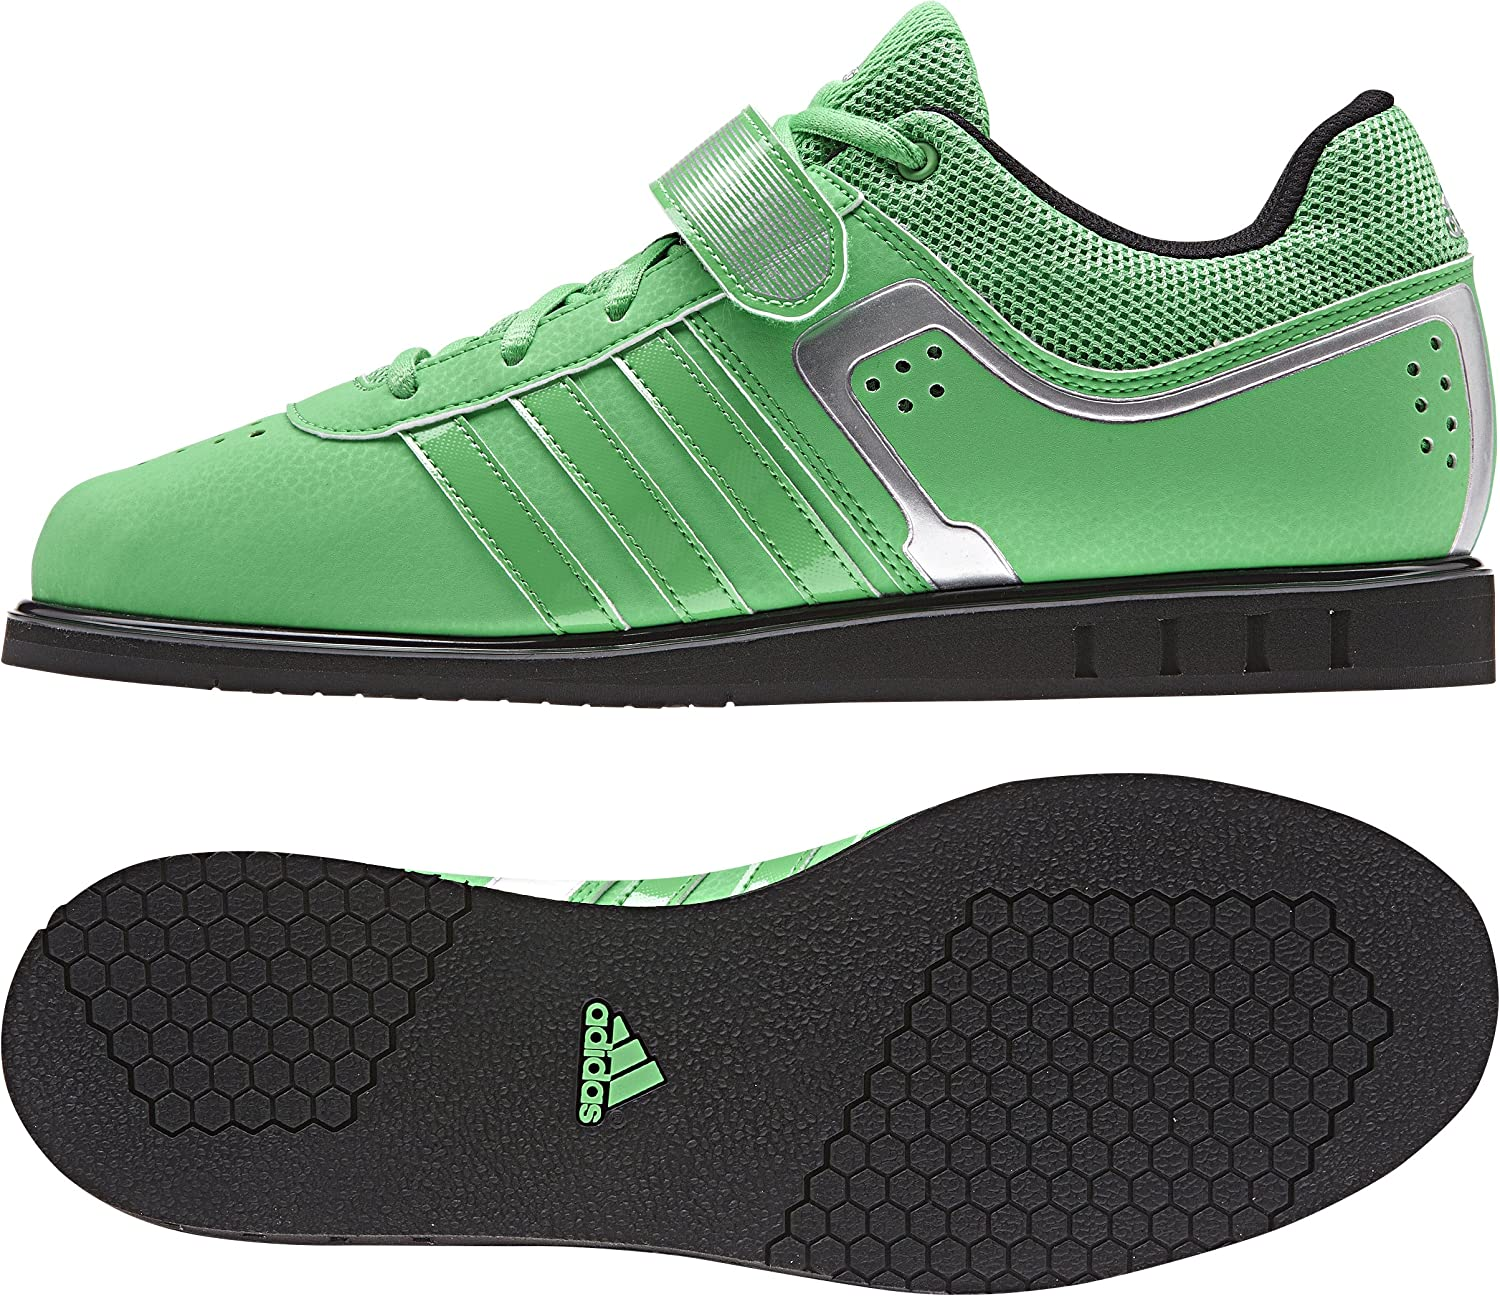 a5cf30101f0b Adidas Powerlift 2.0 Mens Weight Lifting Shoes